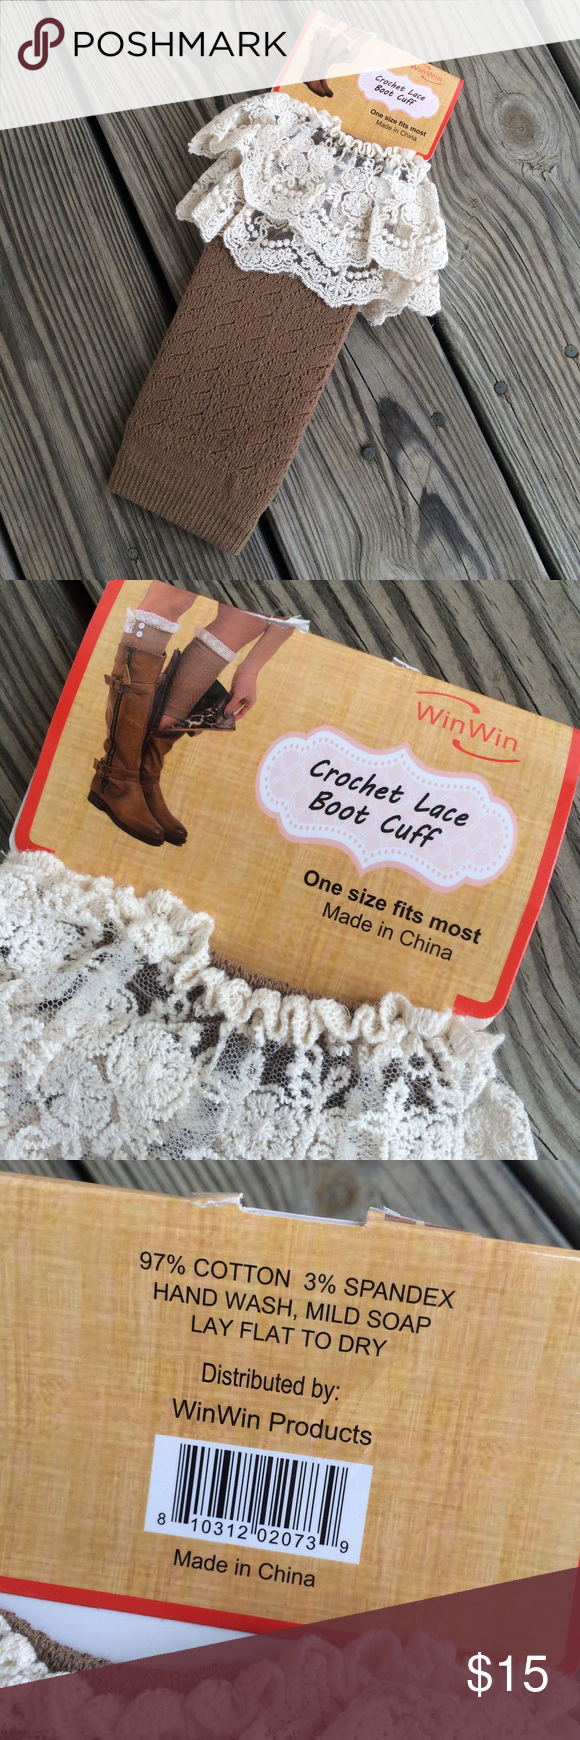 NEW Crochet Lace Boot Cuffs New pair of brown crochet lace boot cuffs. One size fits most. Accessories